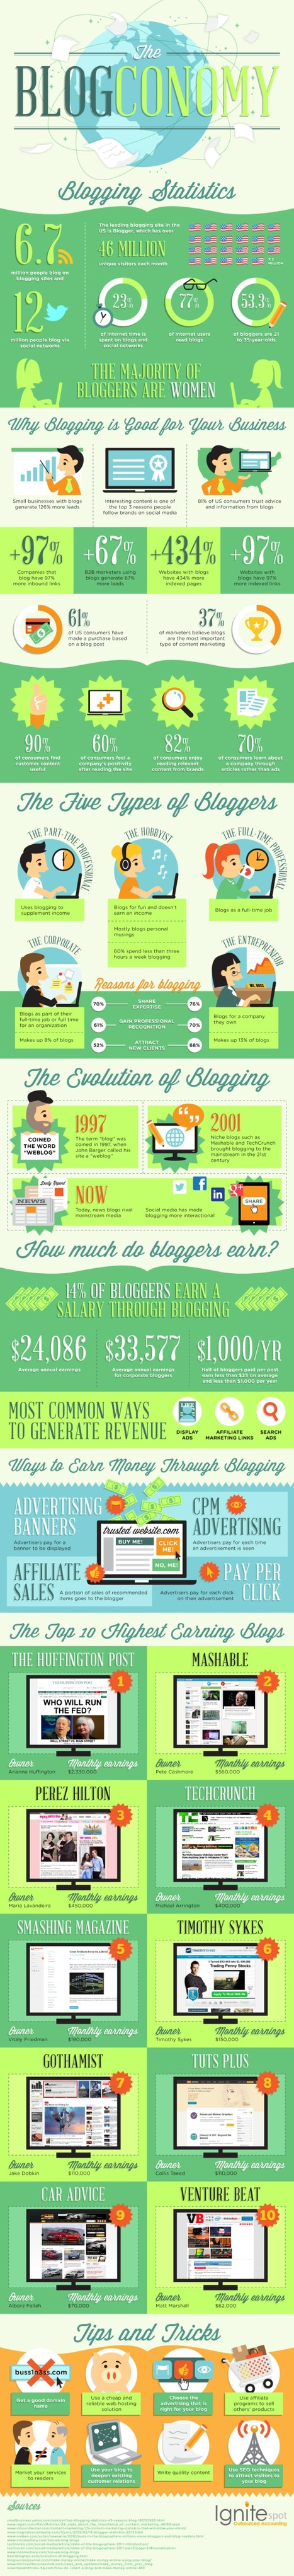 Infographic: The Blogconomy and Blogging Stats | Business for small businesses | Scoop.it